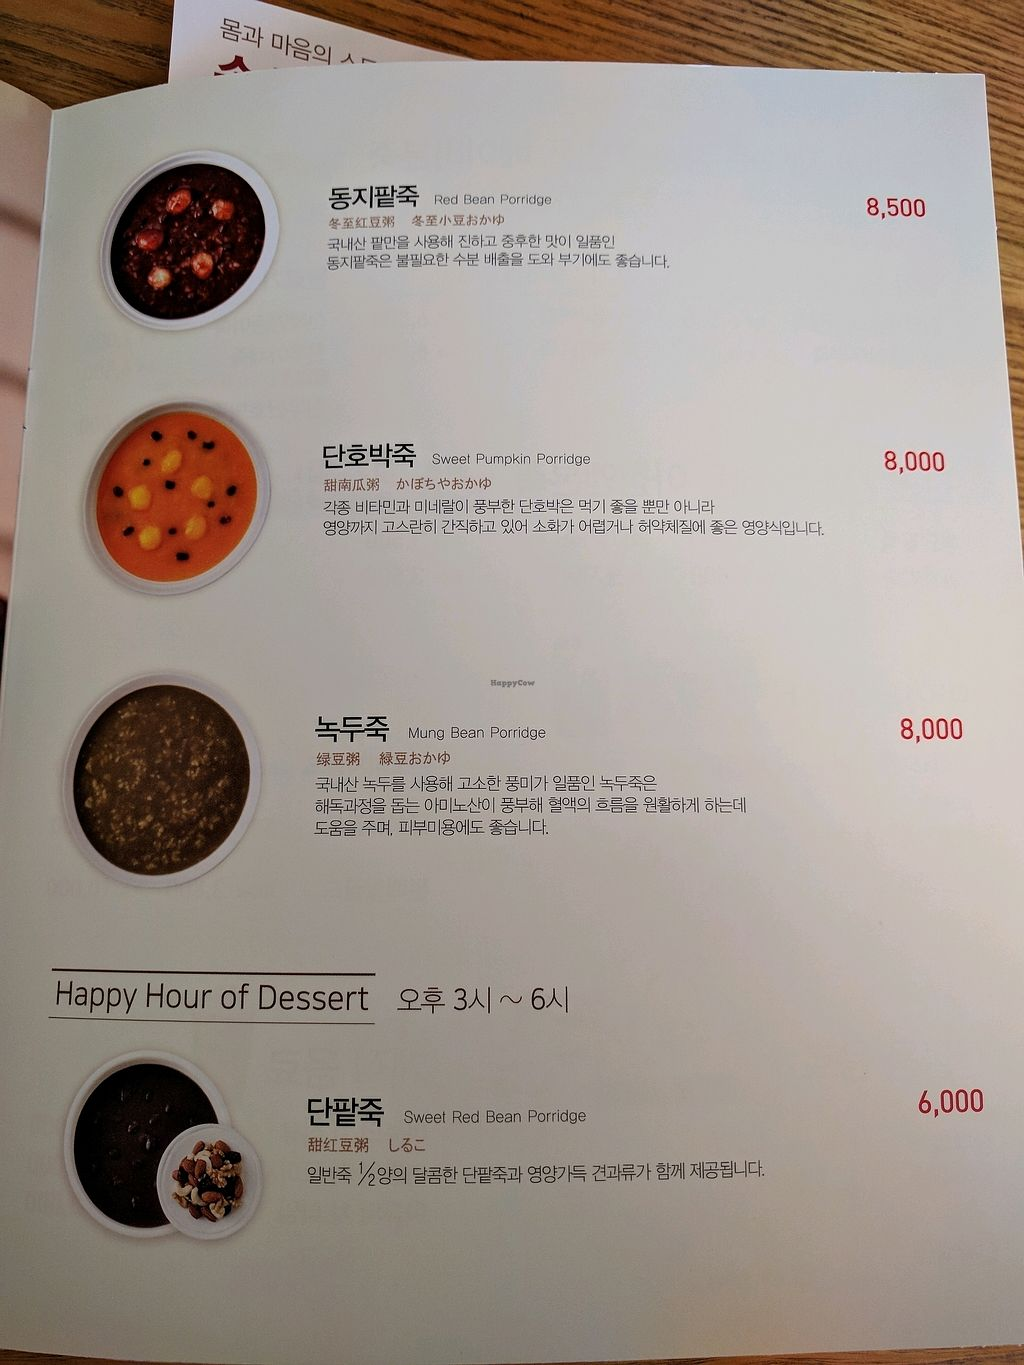 """Photo of Bonjuk and Bibimbap - Seocho Court  by <a href=""""/members/profile/PhillipPark"""">PhillipPark</a> <br/>red bean, sweet pumpkin, and mung bean porridges are vegan <br/> December 1, 2017  - <a href='/contact/abuse/image/105518/331148'>Report</a>"""